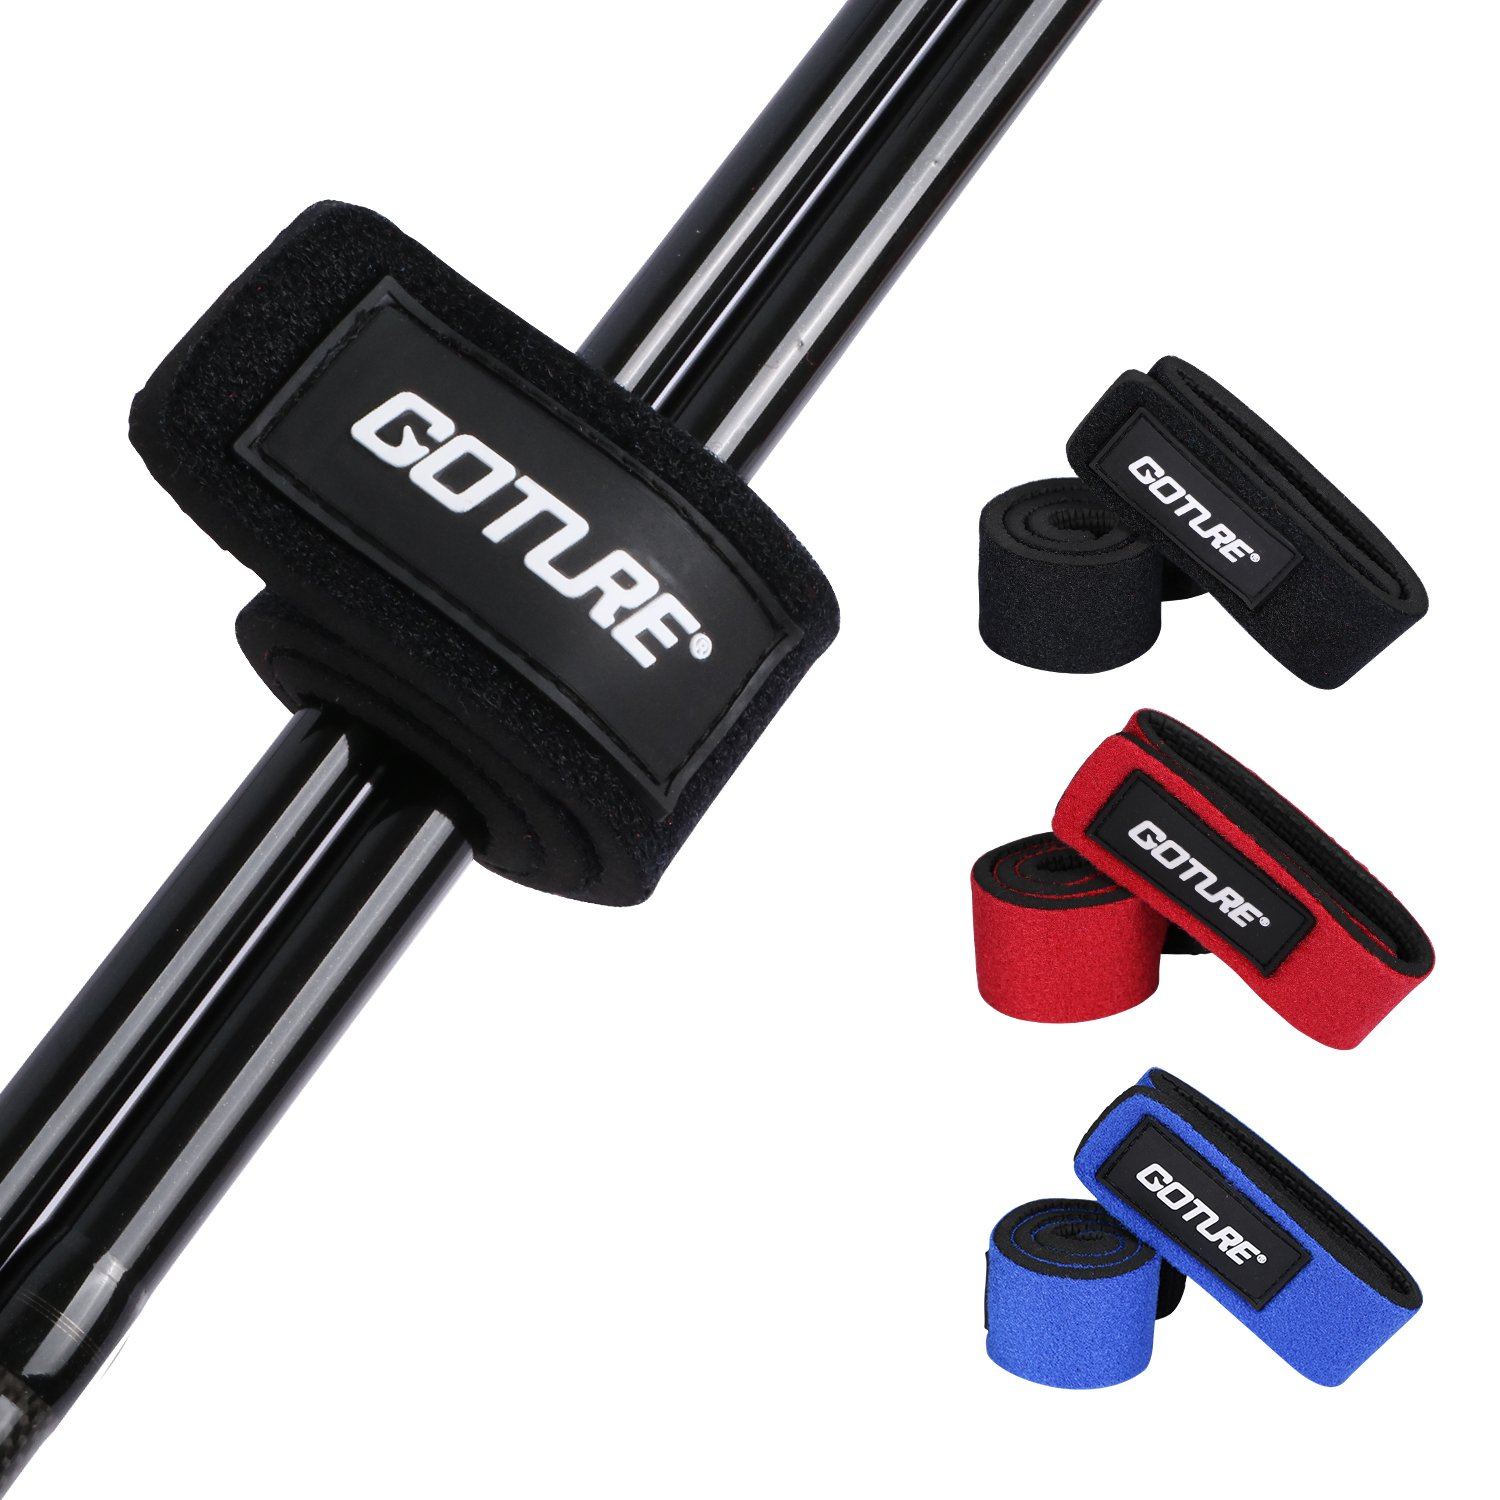 Goture Fishing Rod Belts Cable Tie Strap Stretchy Finishing Rod Holders Accessories